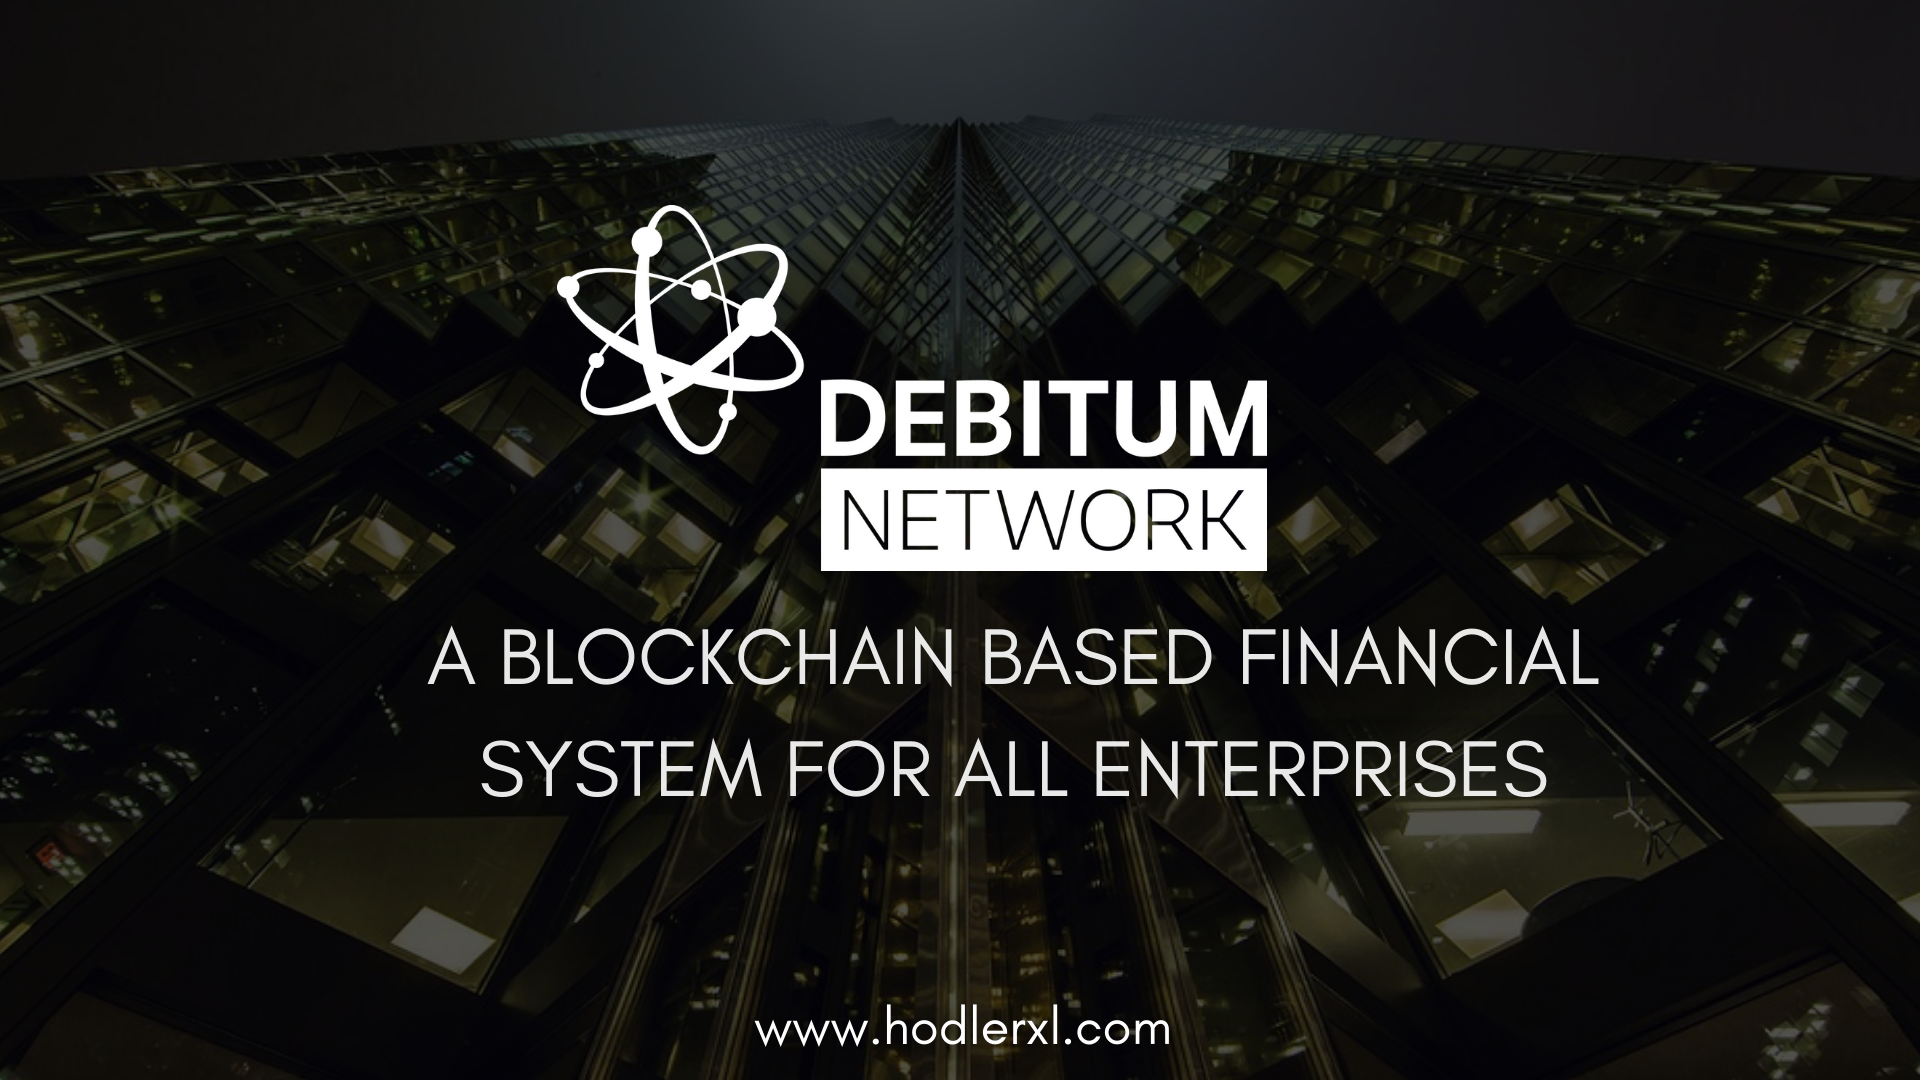 Debitum Network_ A Blockchain Based Financial System For All Enterprises